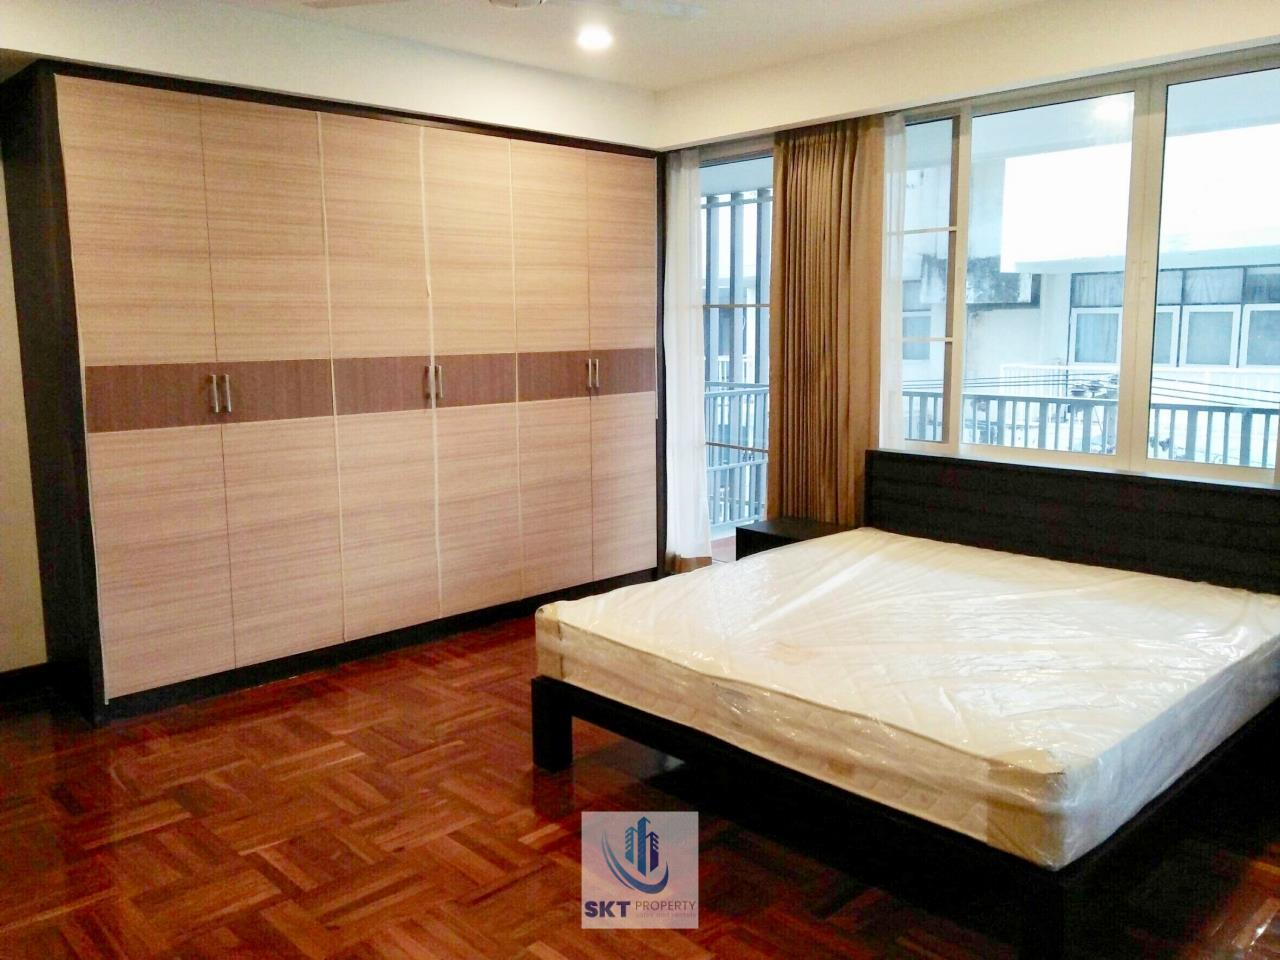 Sukritta Property Agency's For Rent PET FRIENDLY APARTMENT Insaf Tower Near Bts Nana 6